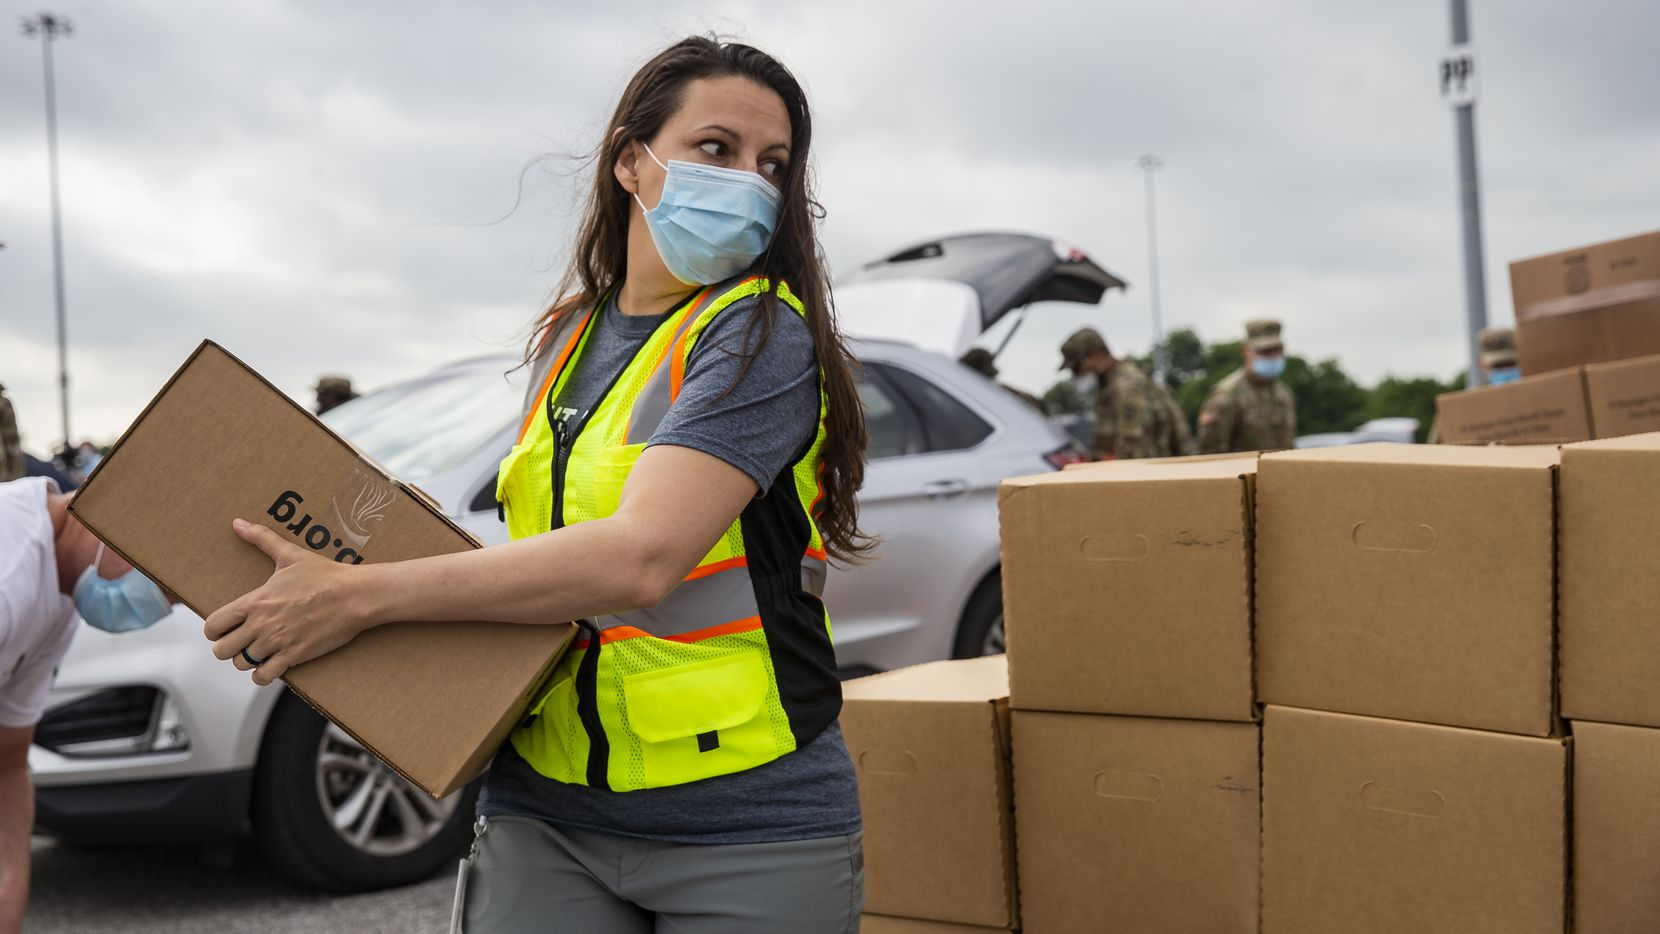 Dr. Valerie Hawthorne, government relations director for the North Texas Food Bank, helps moved boxes of snack packs at Fair Park on Thursday.